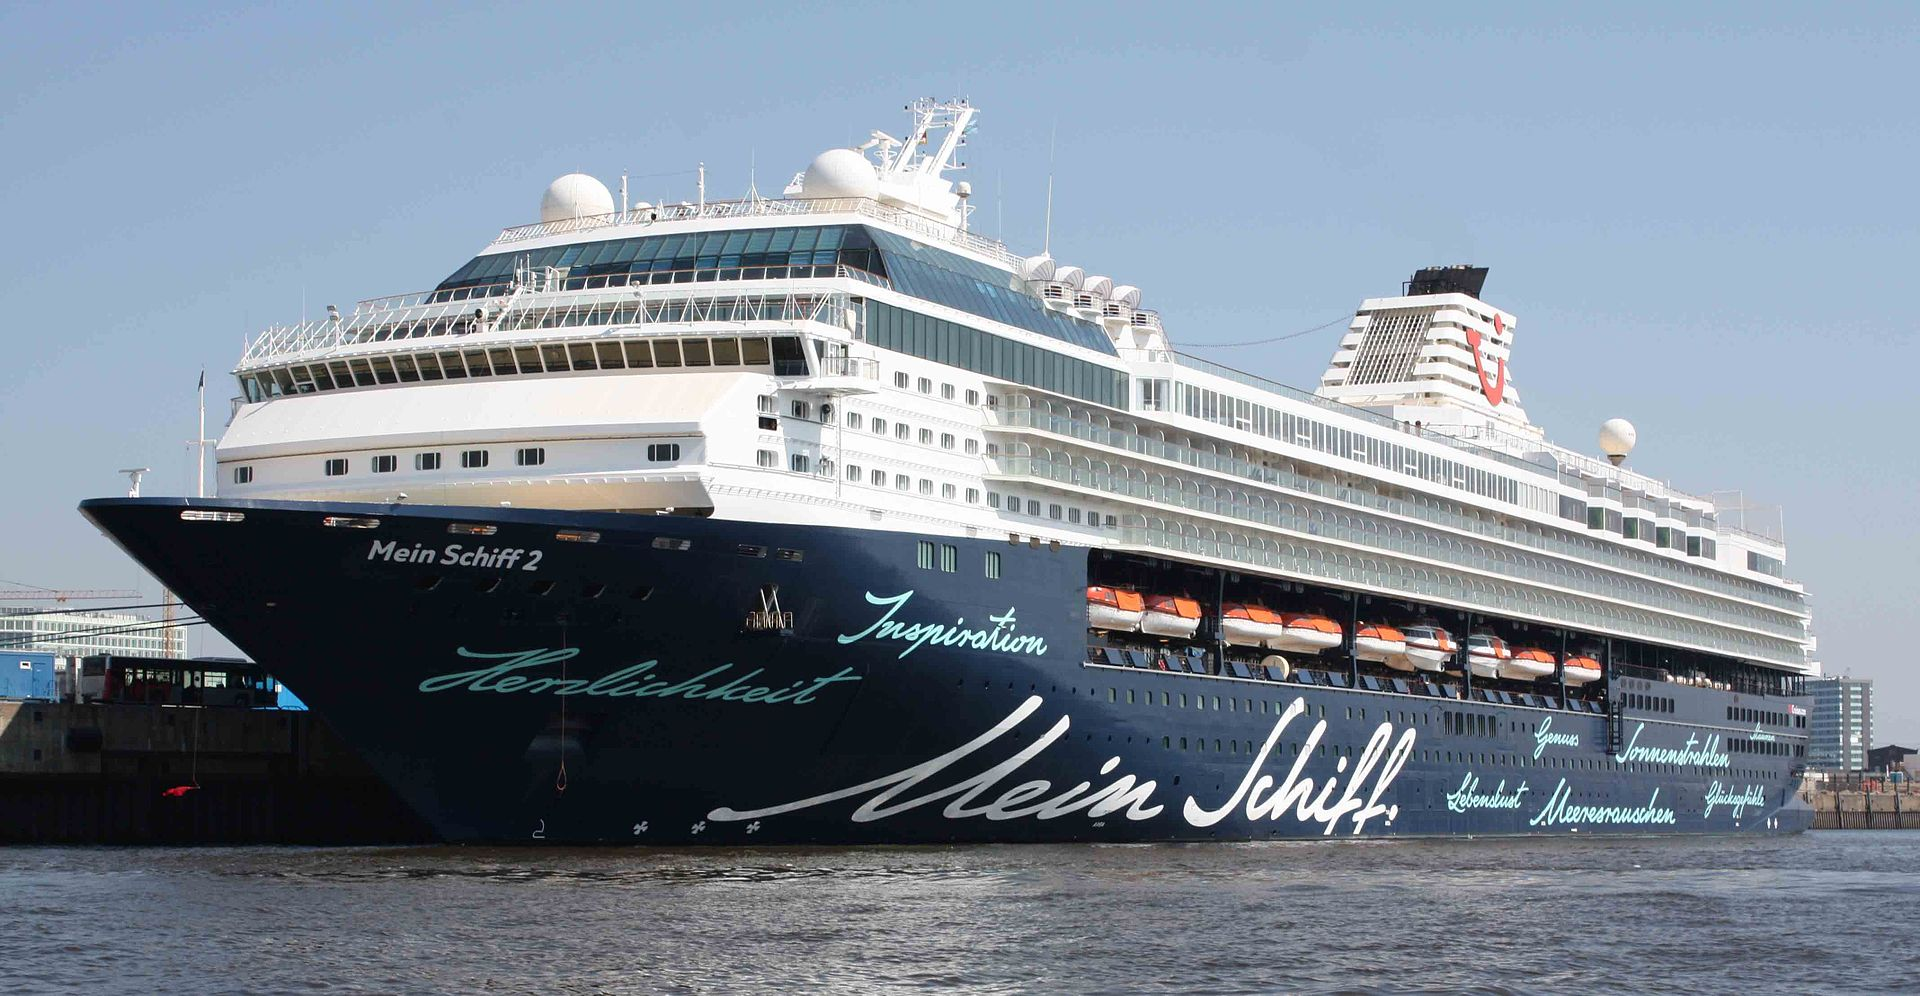 mein schiff 2 wikipedia. Black Bedroom Furniture Sets. Home Design Ideas